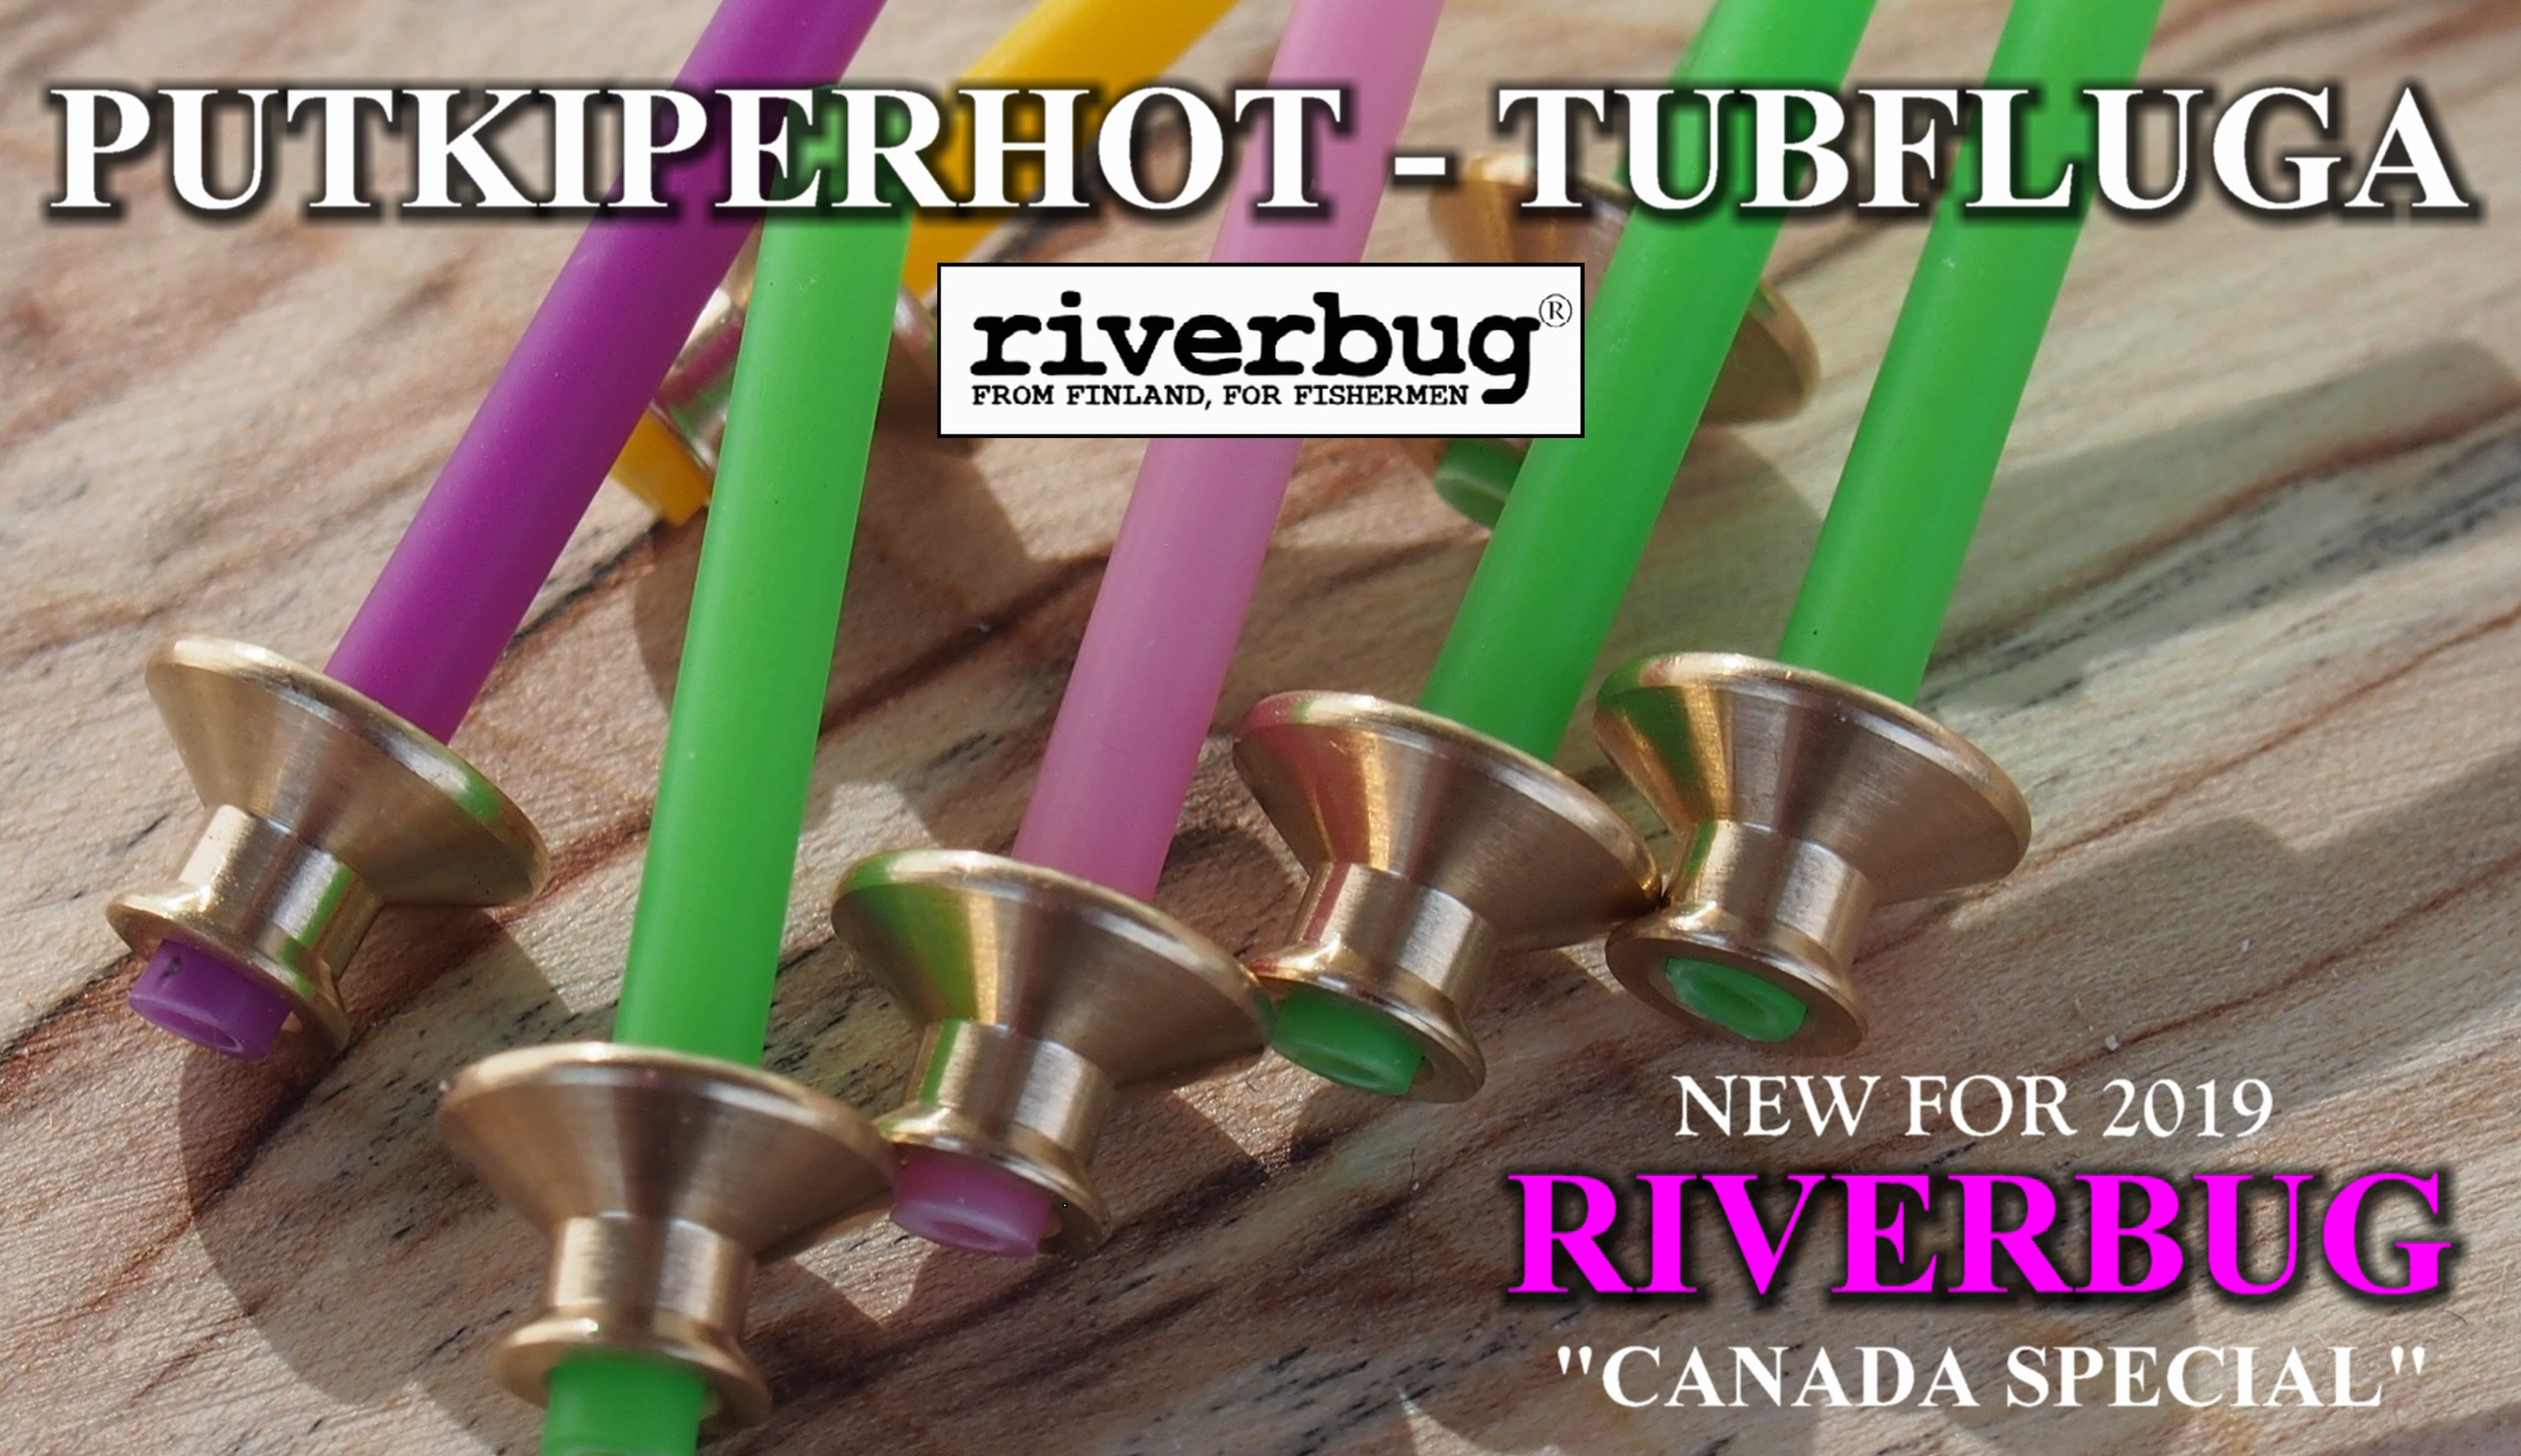 Putkiperhot - New RiverBug tube fly sleeves for season 2019